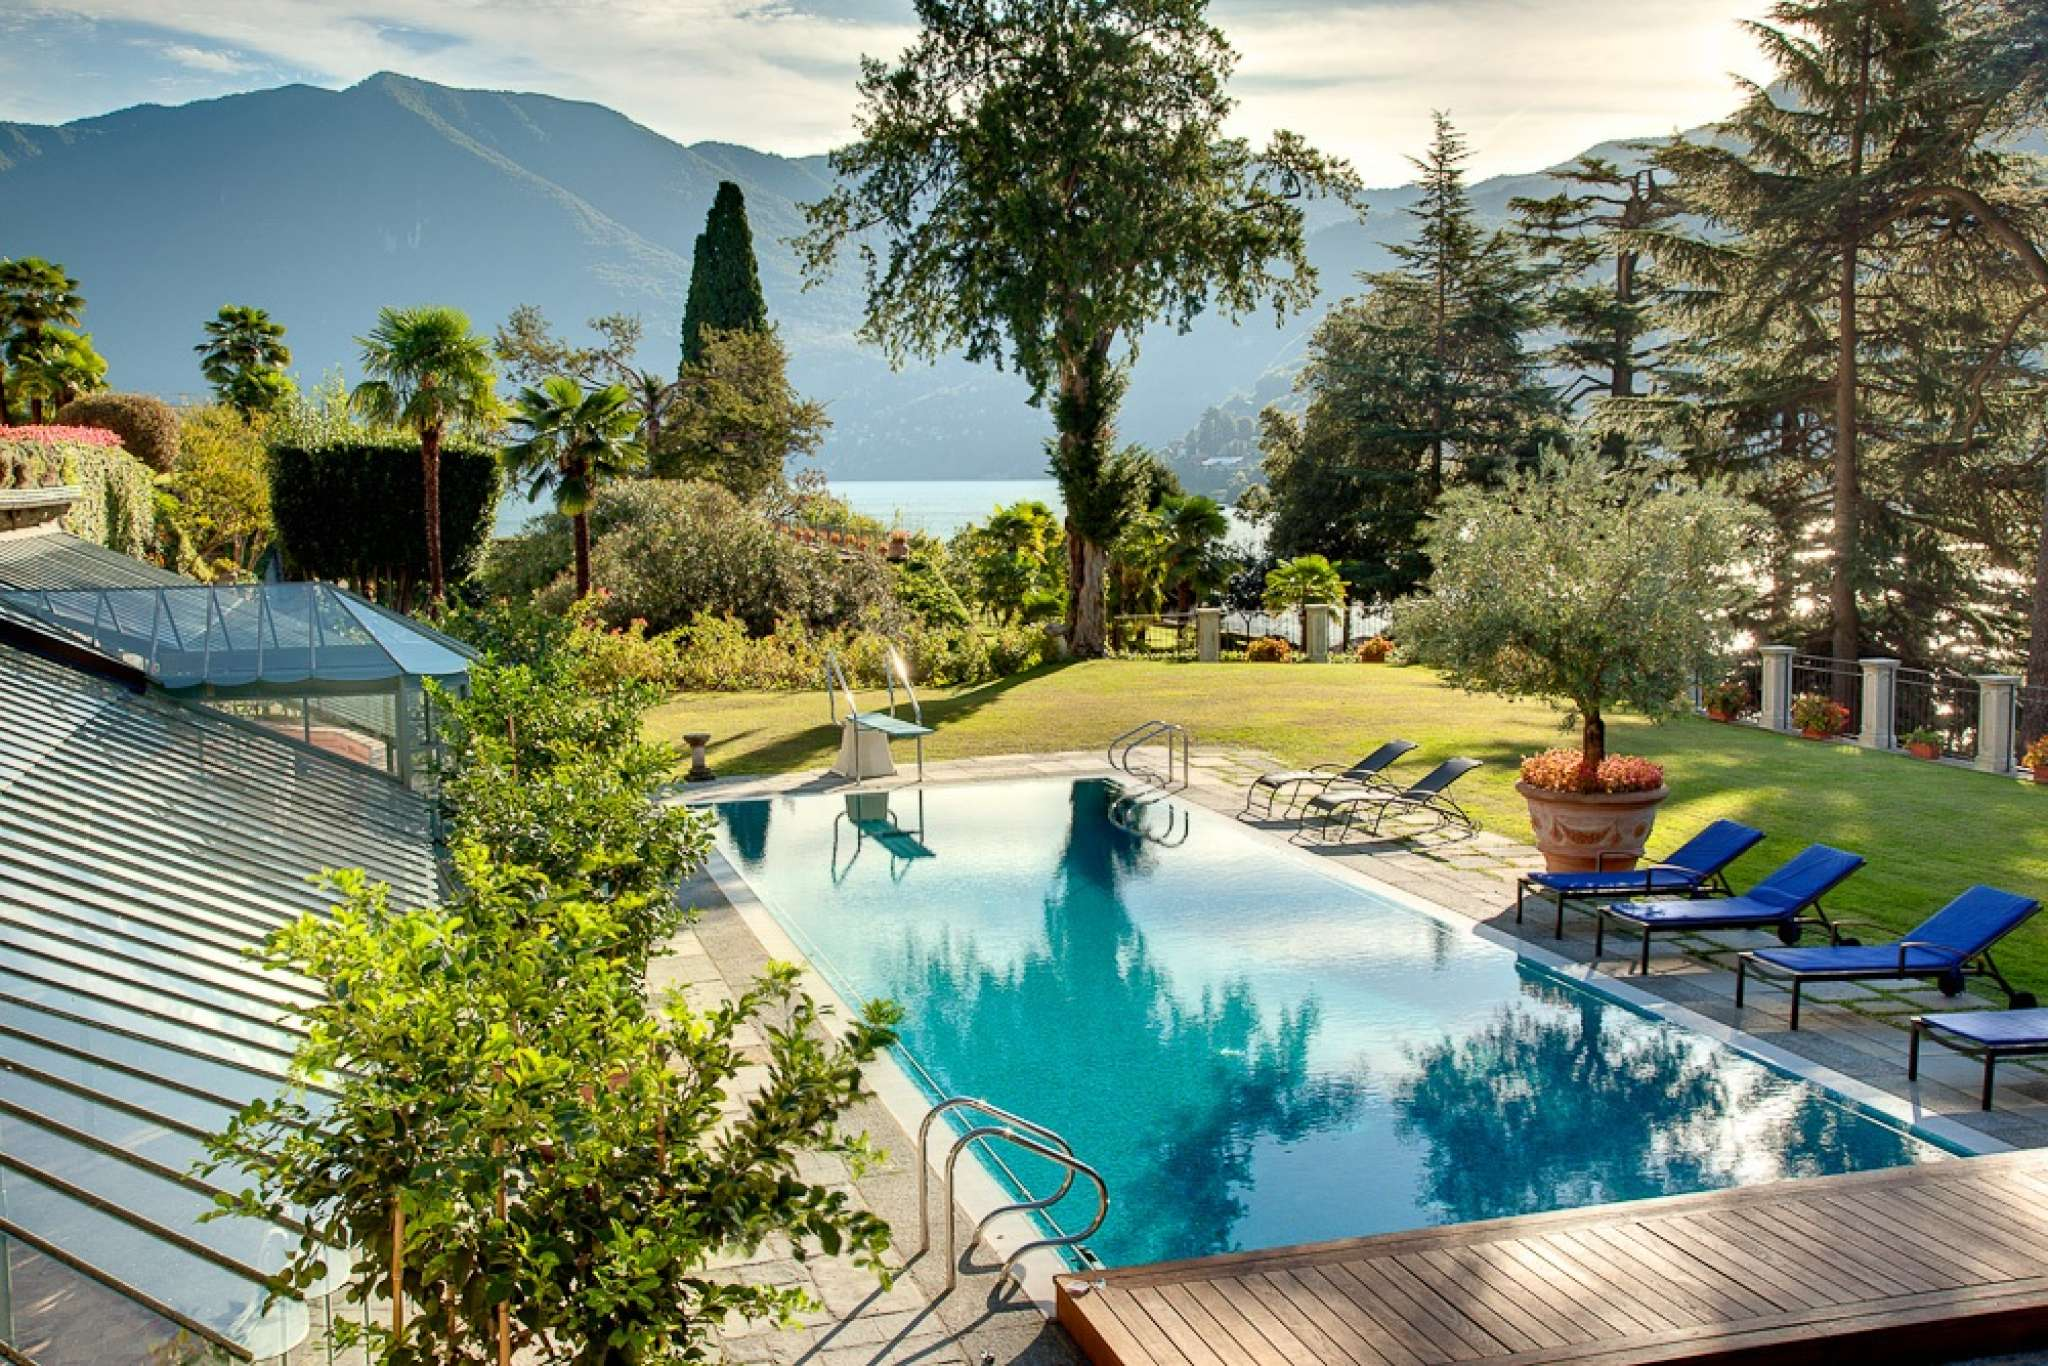 Villa Aghata A Luxury Villa For Rent On Lake Como Wevillas